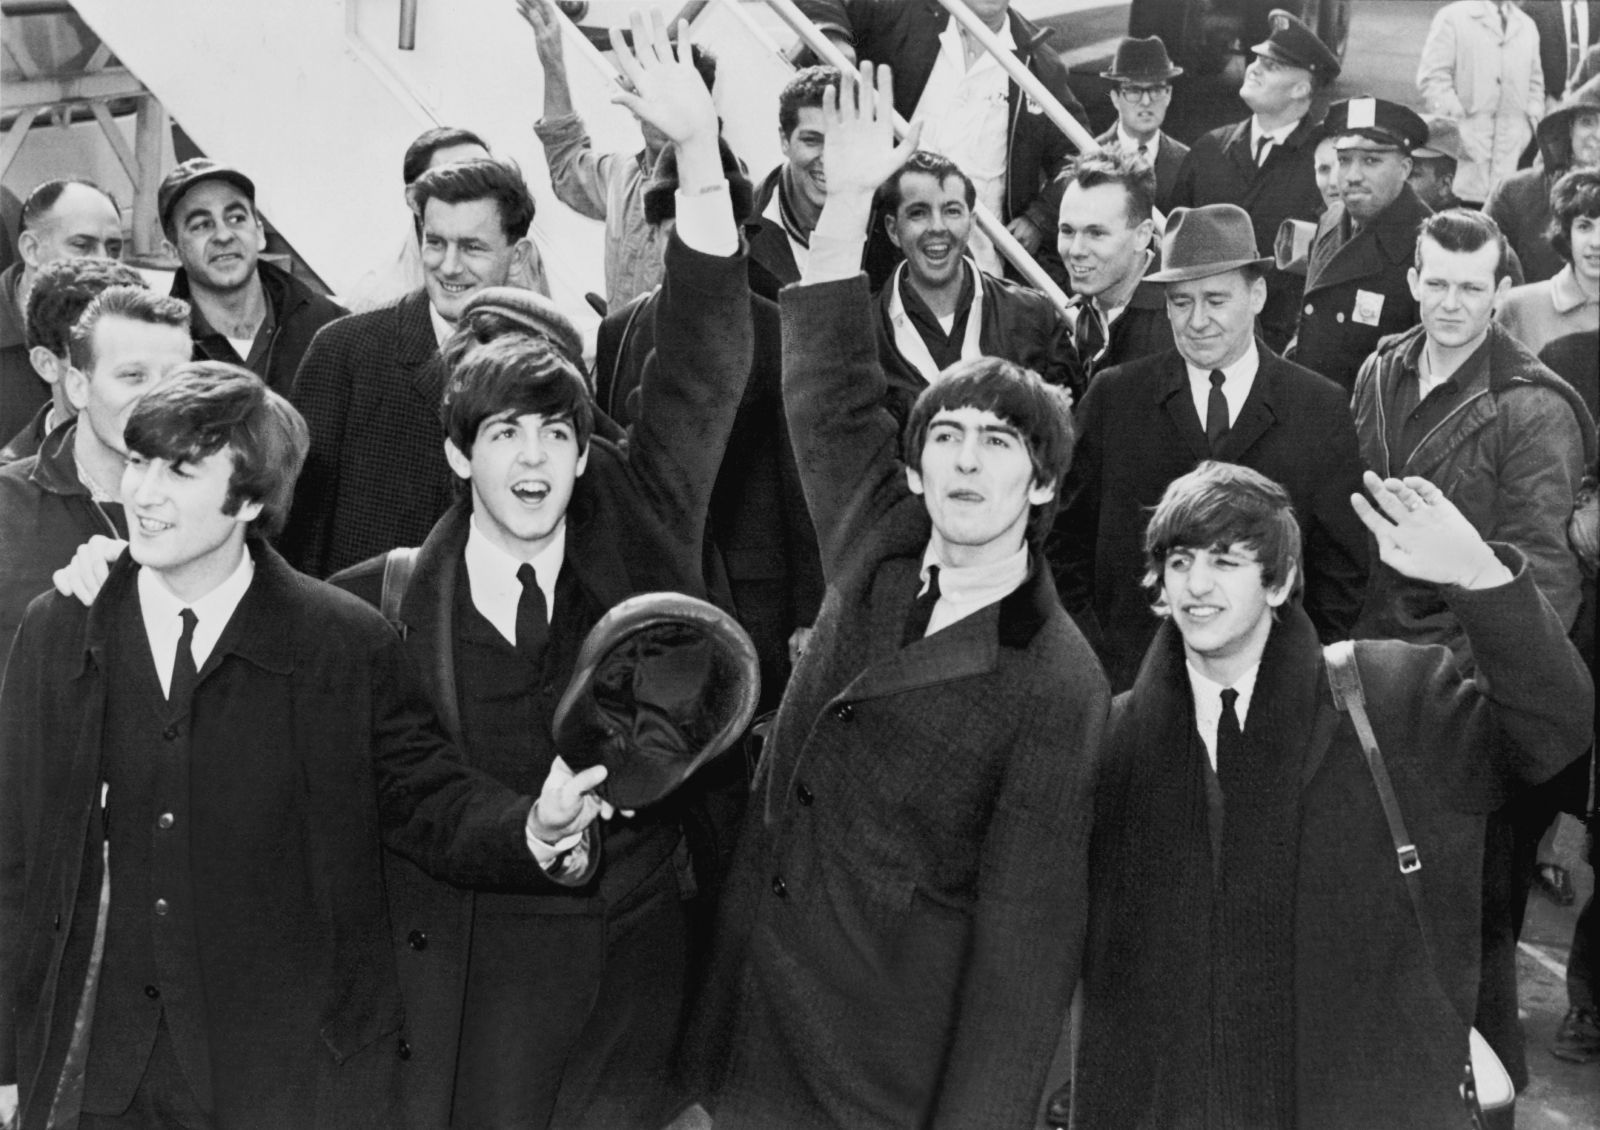 The Beatles at JFK airport